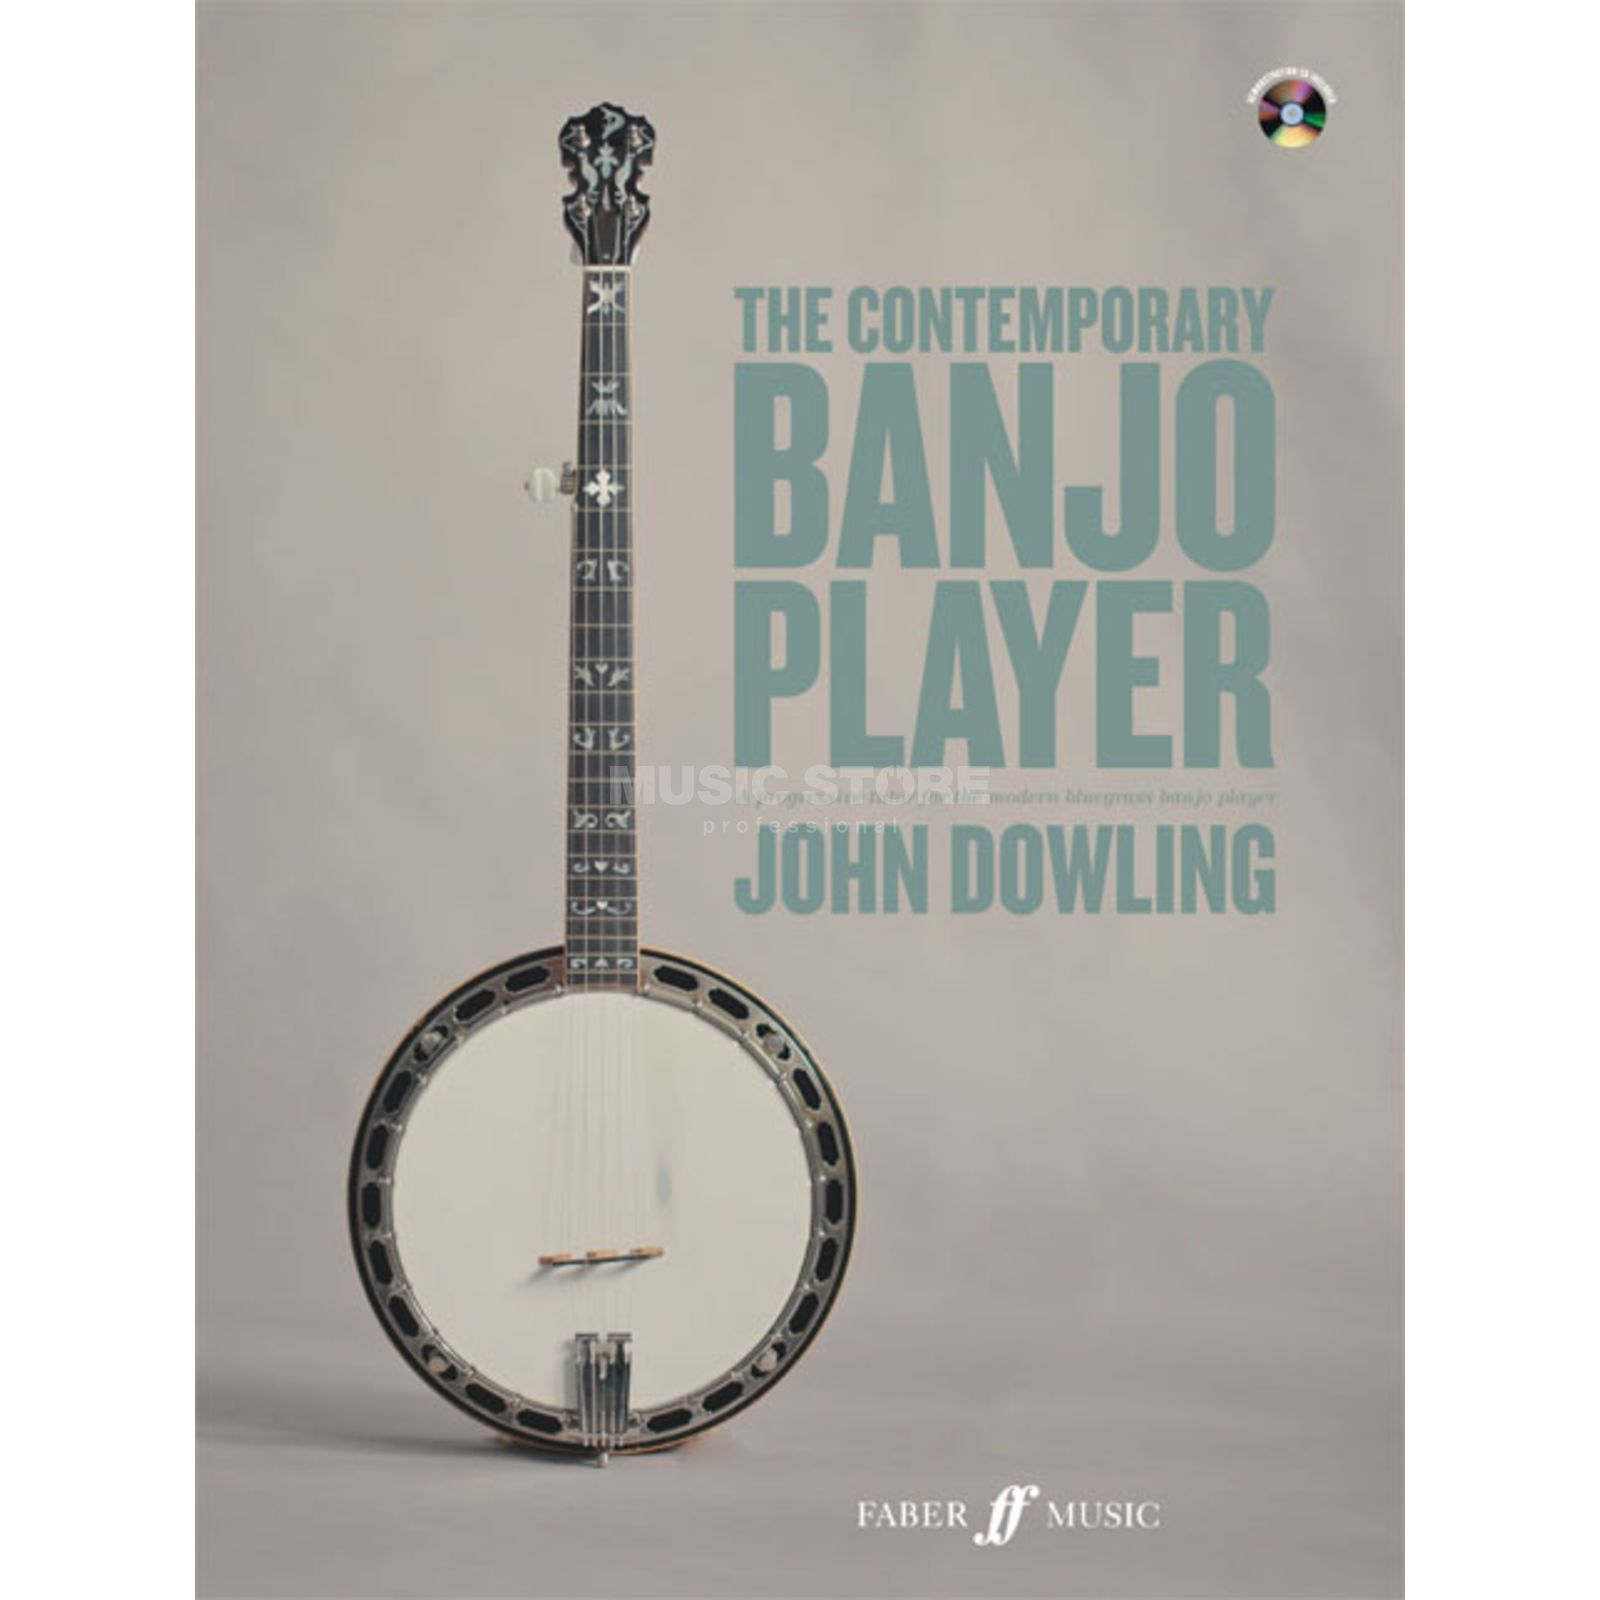 Faber Music The Contemporary Banjo Player John Dowling Produktbild